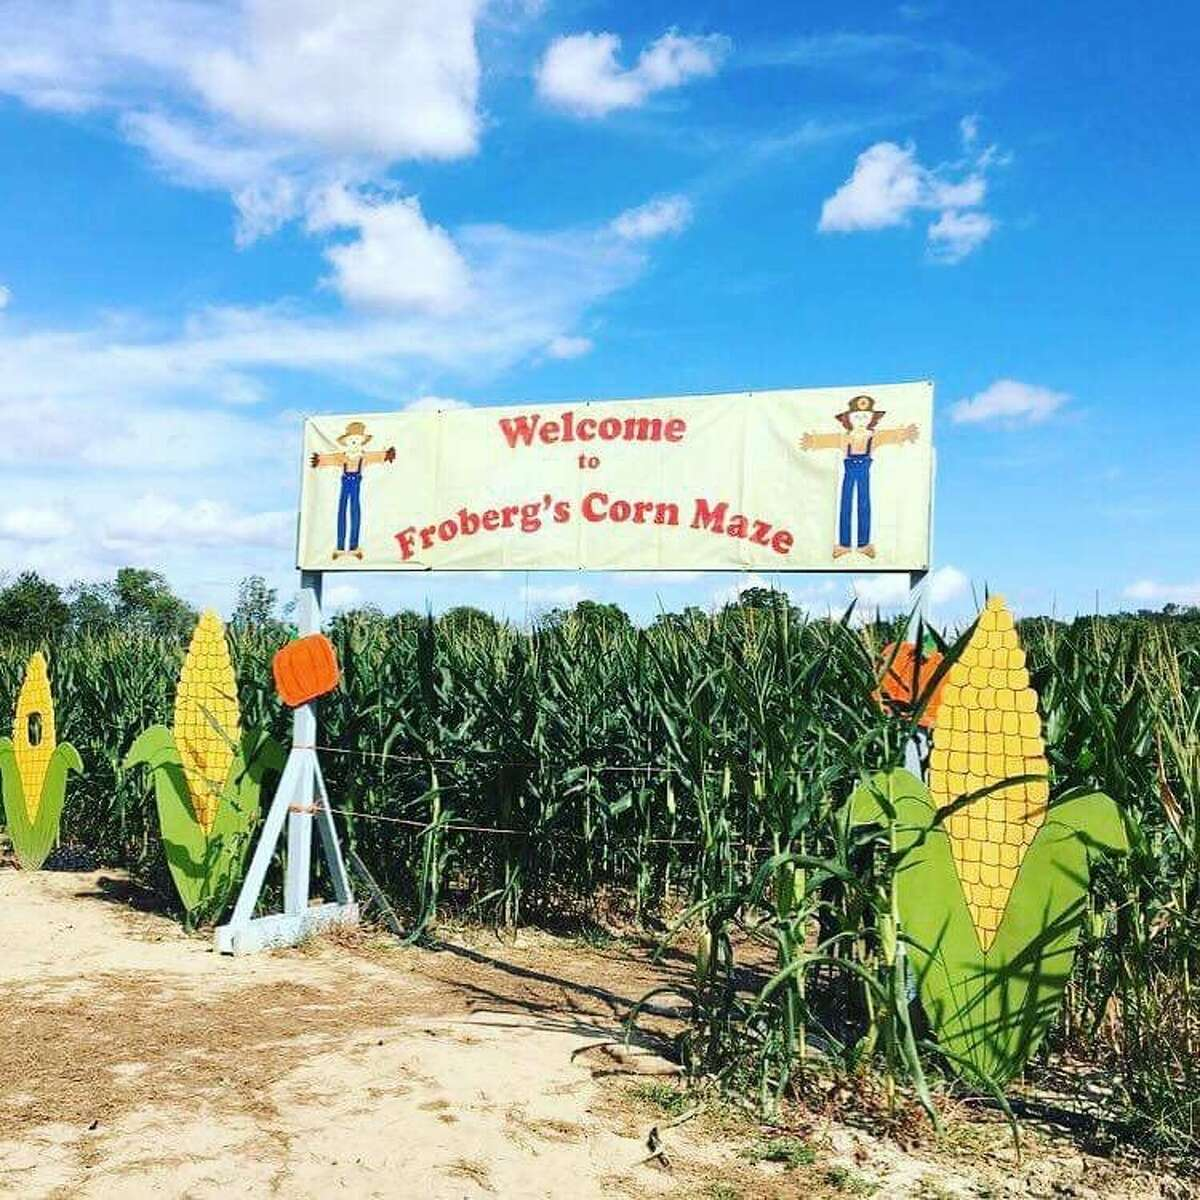 Sept. 28-Nov. 3: Froberg's Farm Fall Festival in Alvin features a corn maze, flower garden, indoor pumpkin patch and a Berry Fun Land for children. Courtesy Felicia B./Yelp